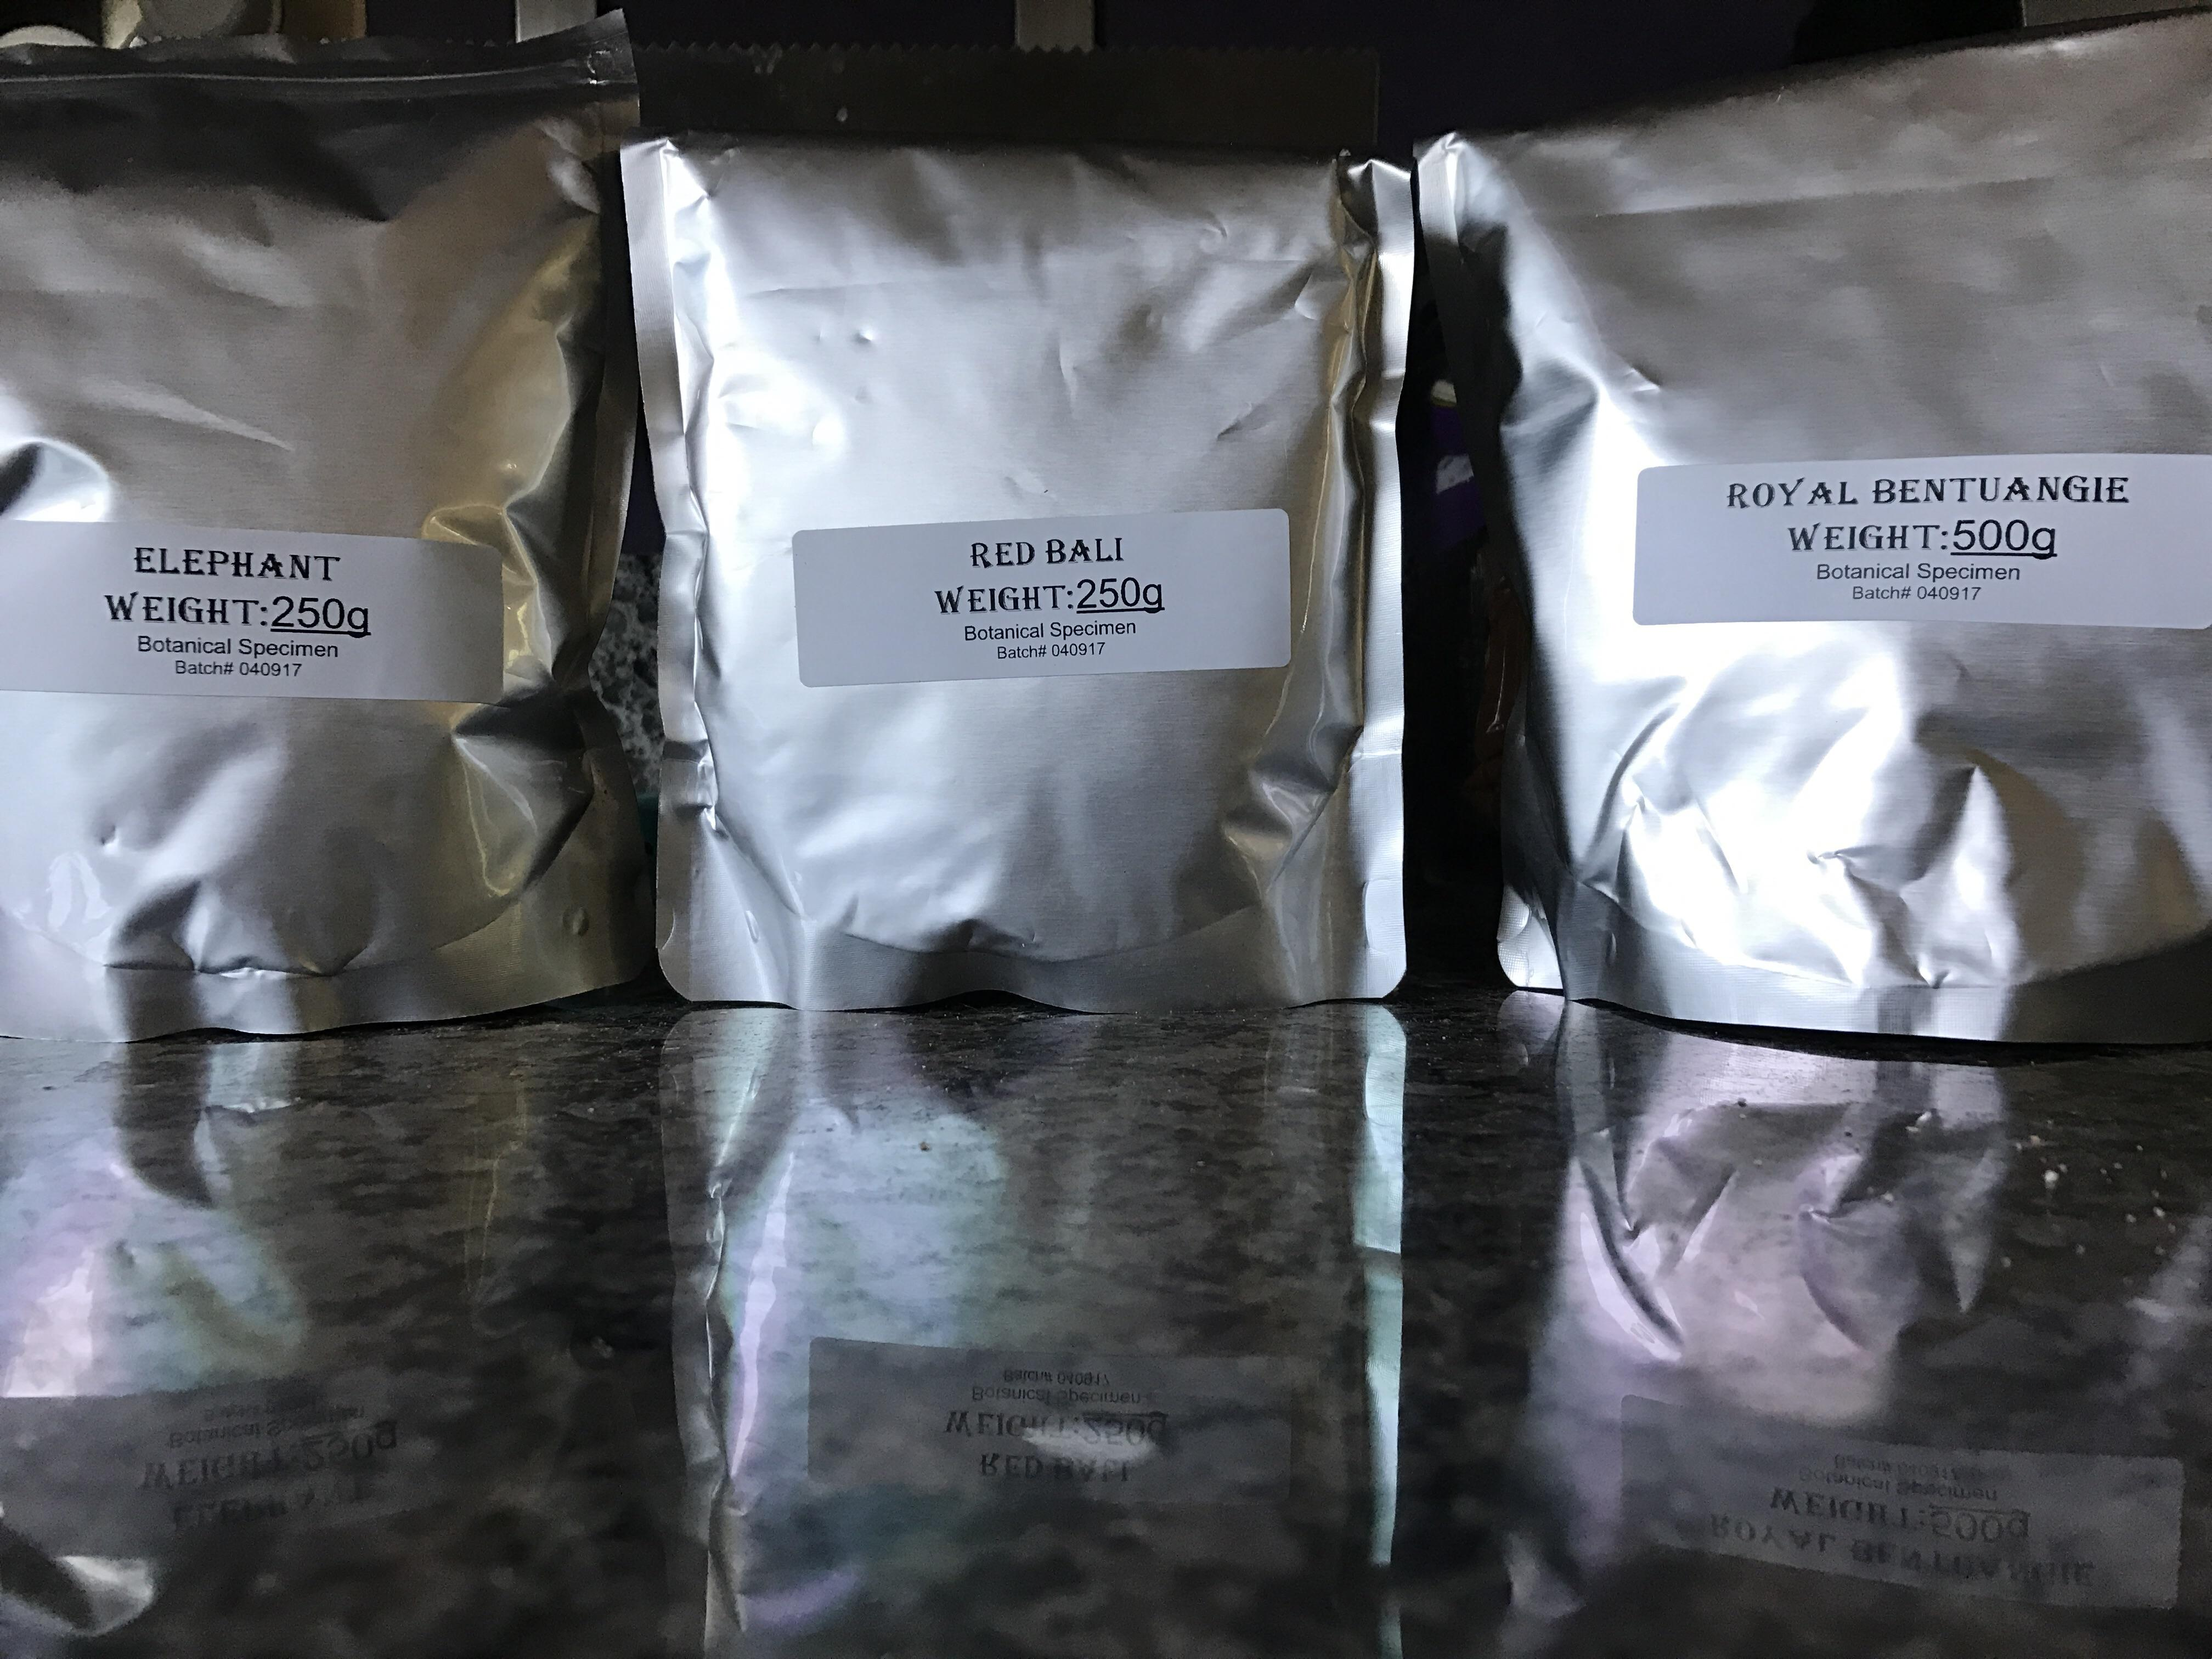 Herbal RVA Review 2018: Is the Online Seller Legit?